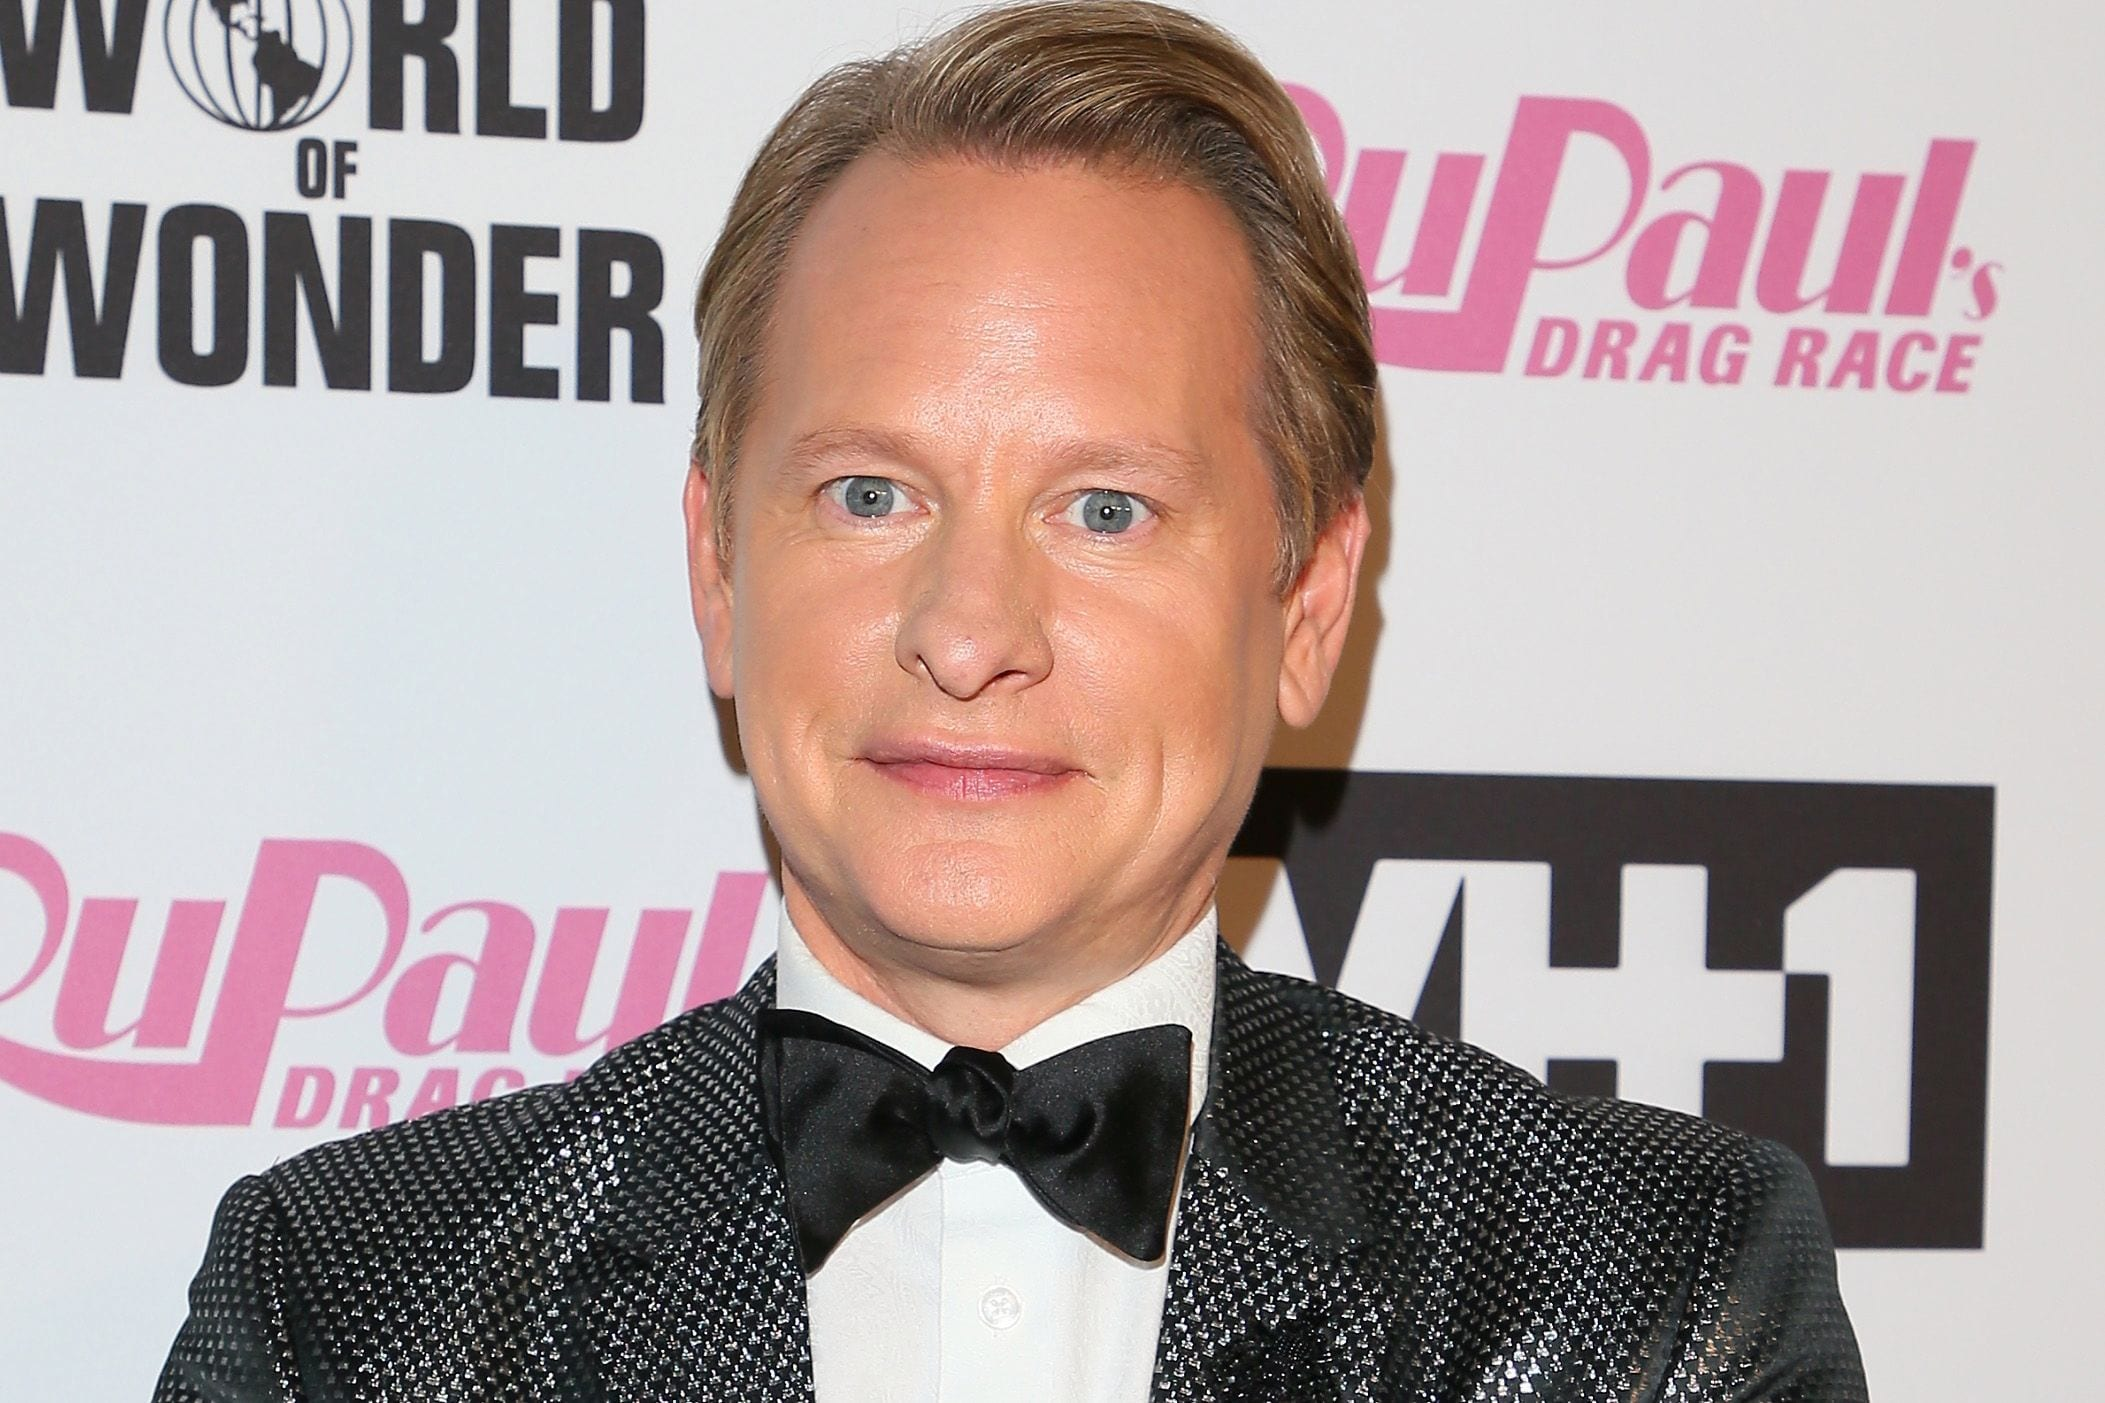 Carson Kressley - Who Did He Choose On Celebrity Dating Show